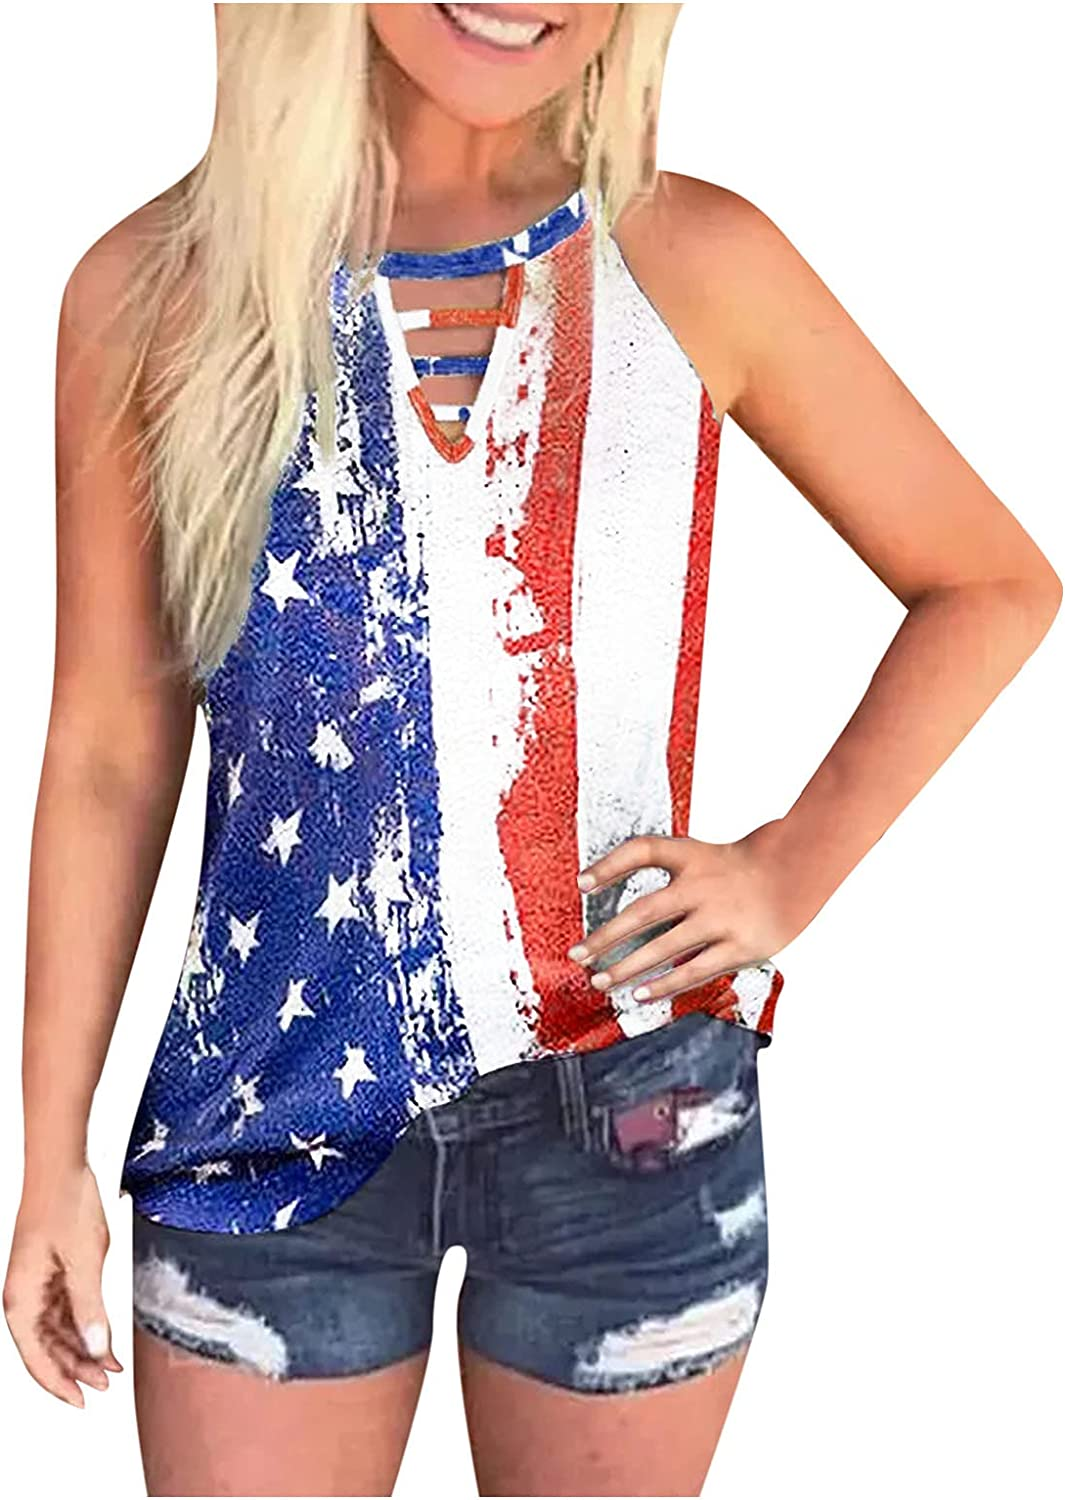 Aukbays Summer Tank Tops for Women, Casual Sleeveless Loose Fit Cut Out Tank Graphic Tees Shirts Blouses Vest Crop Tops